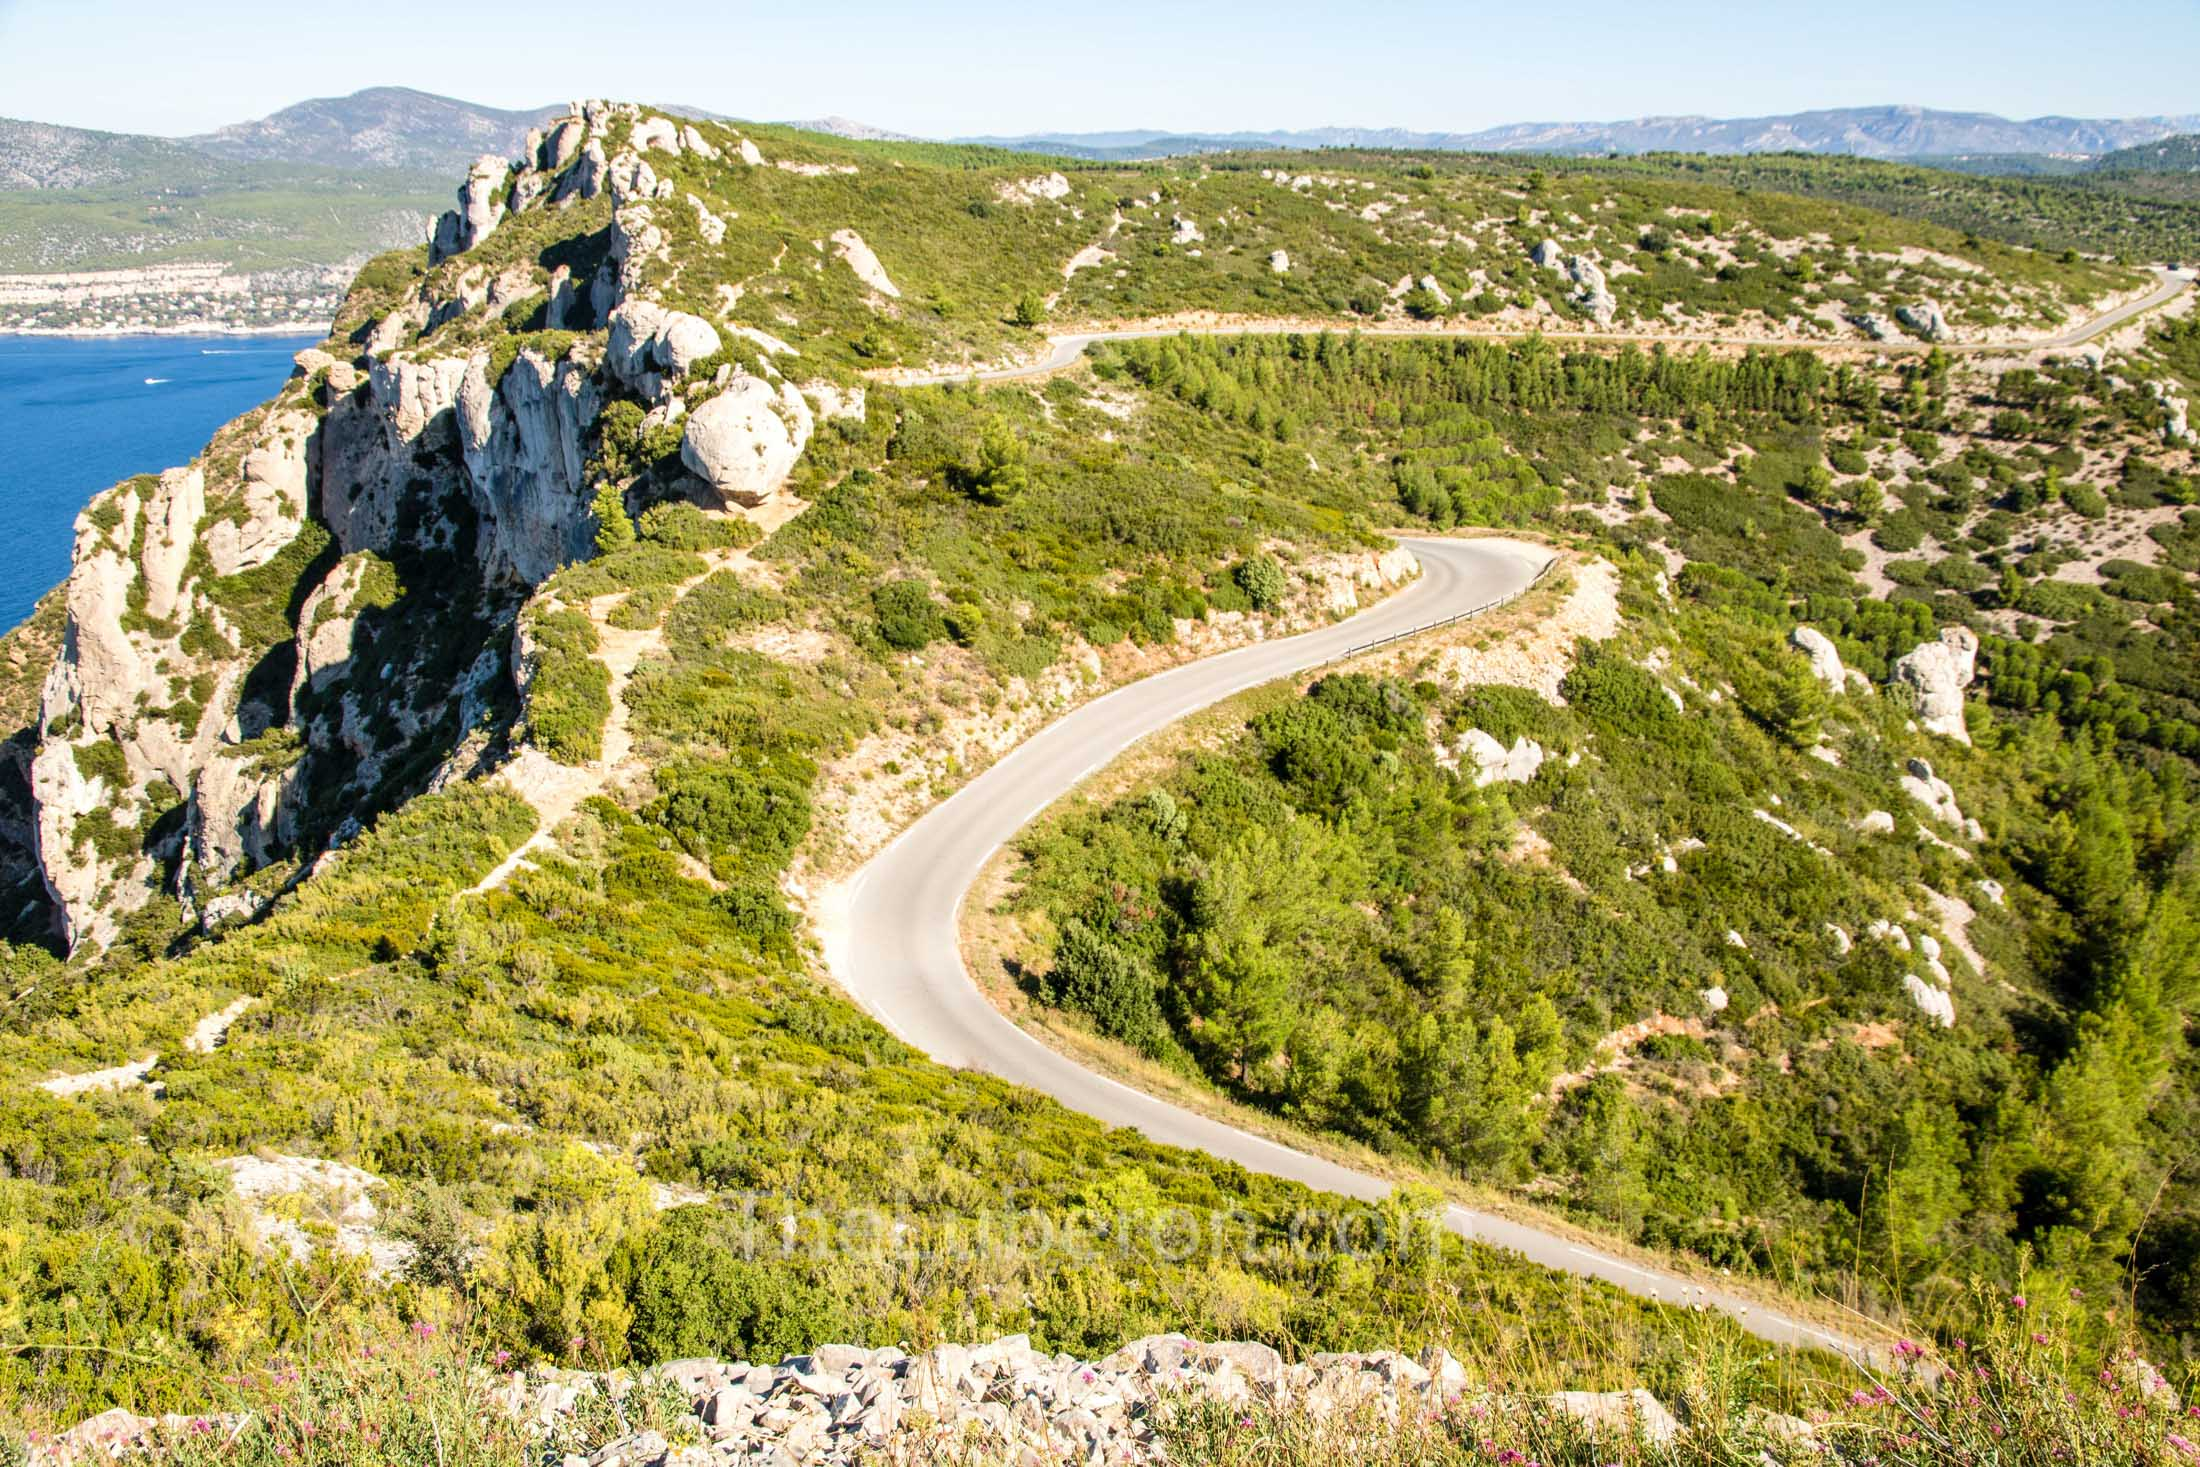 Road from Cassis to La Ciotat